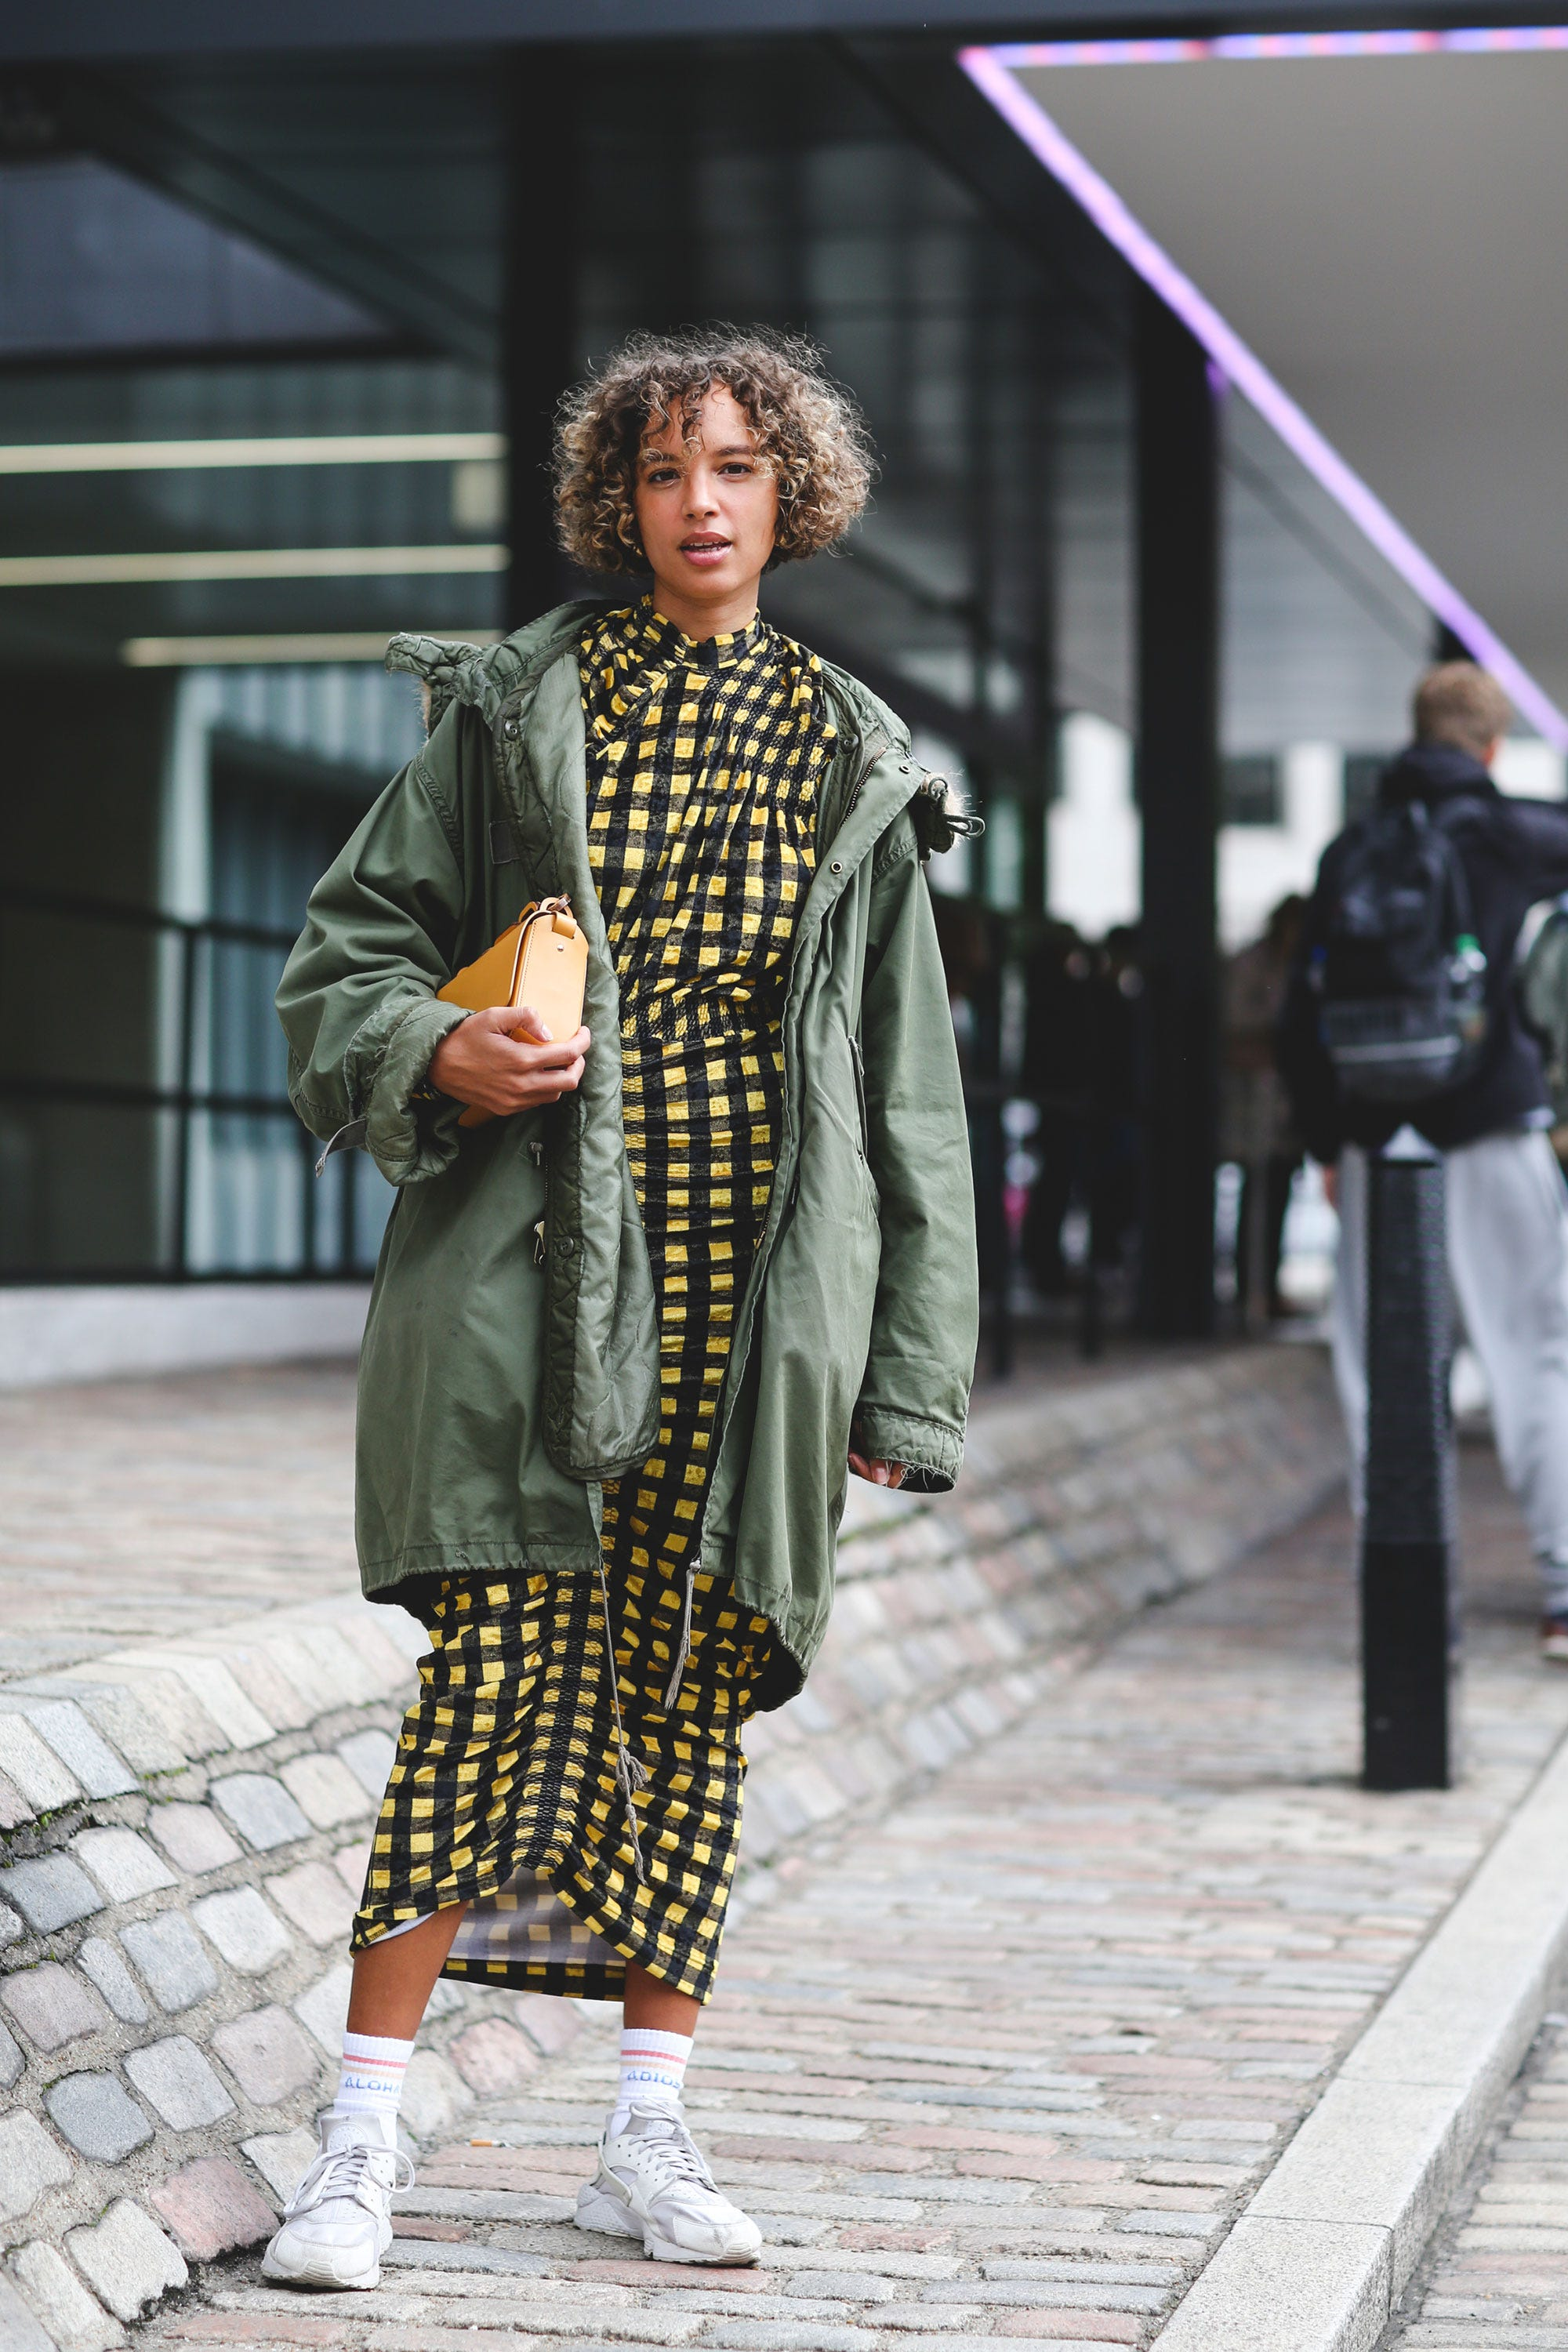 42 London Fashion Week Looks Youll Want Next Season